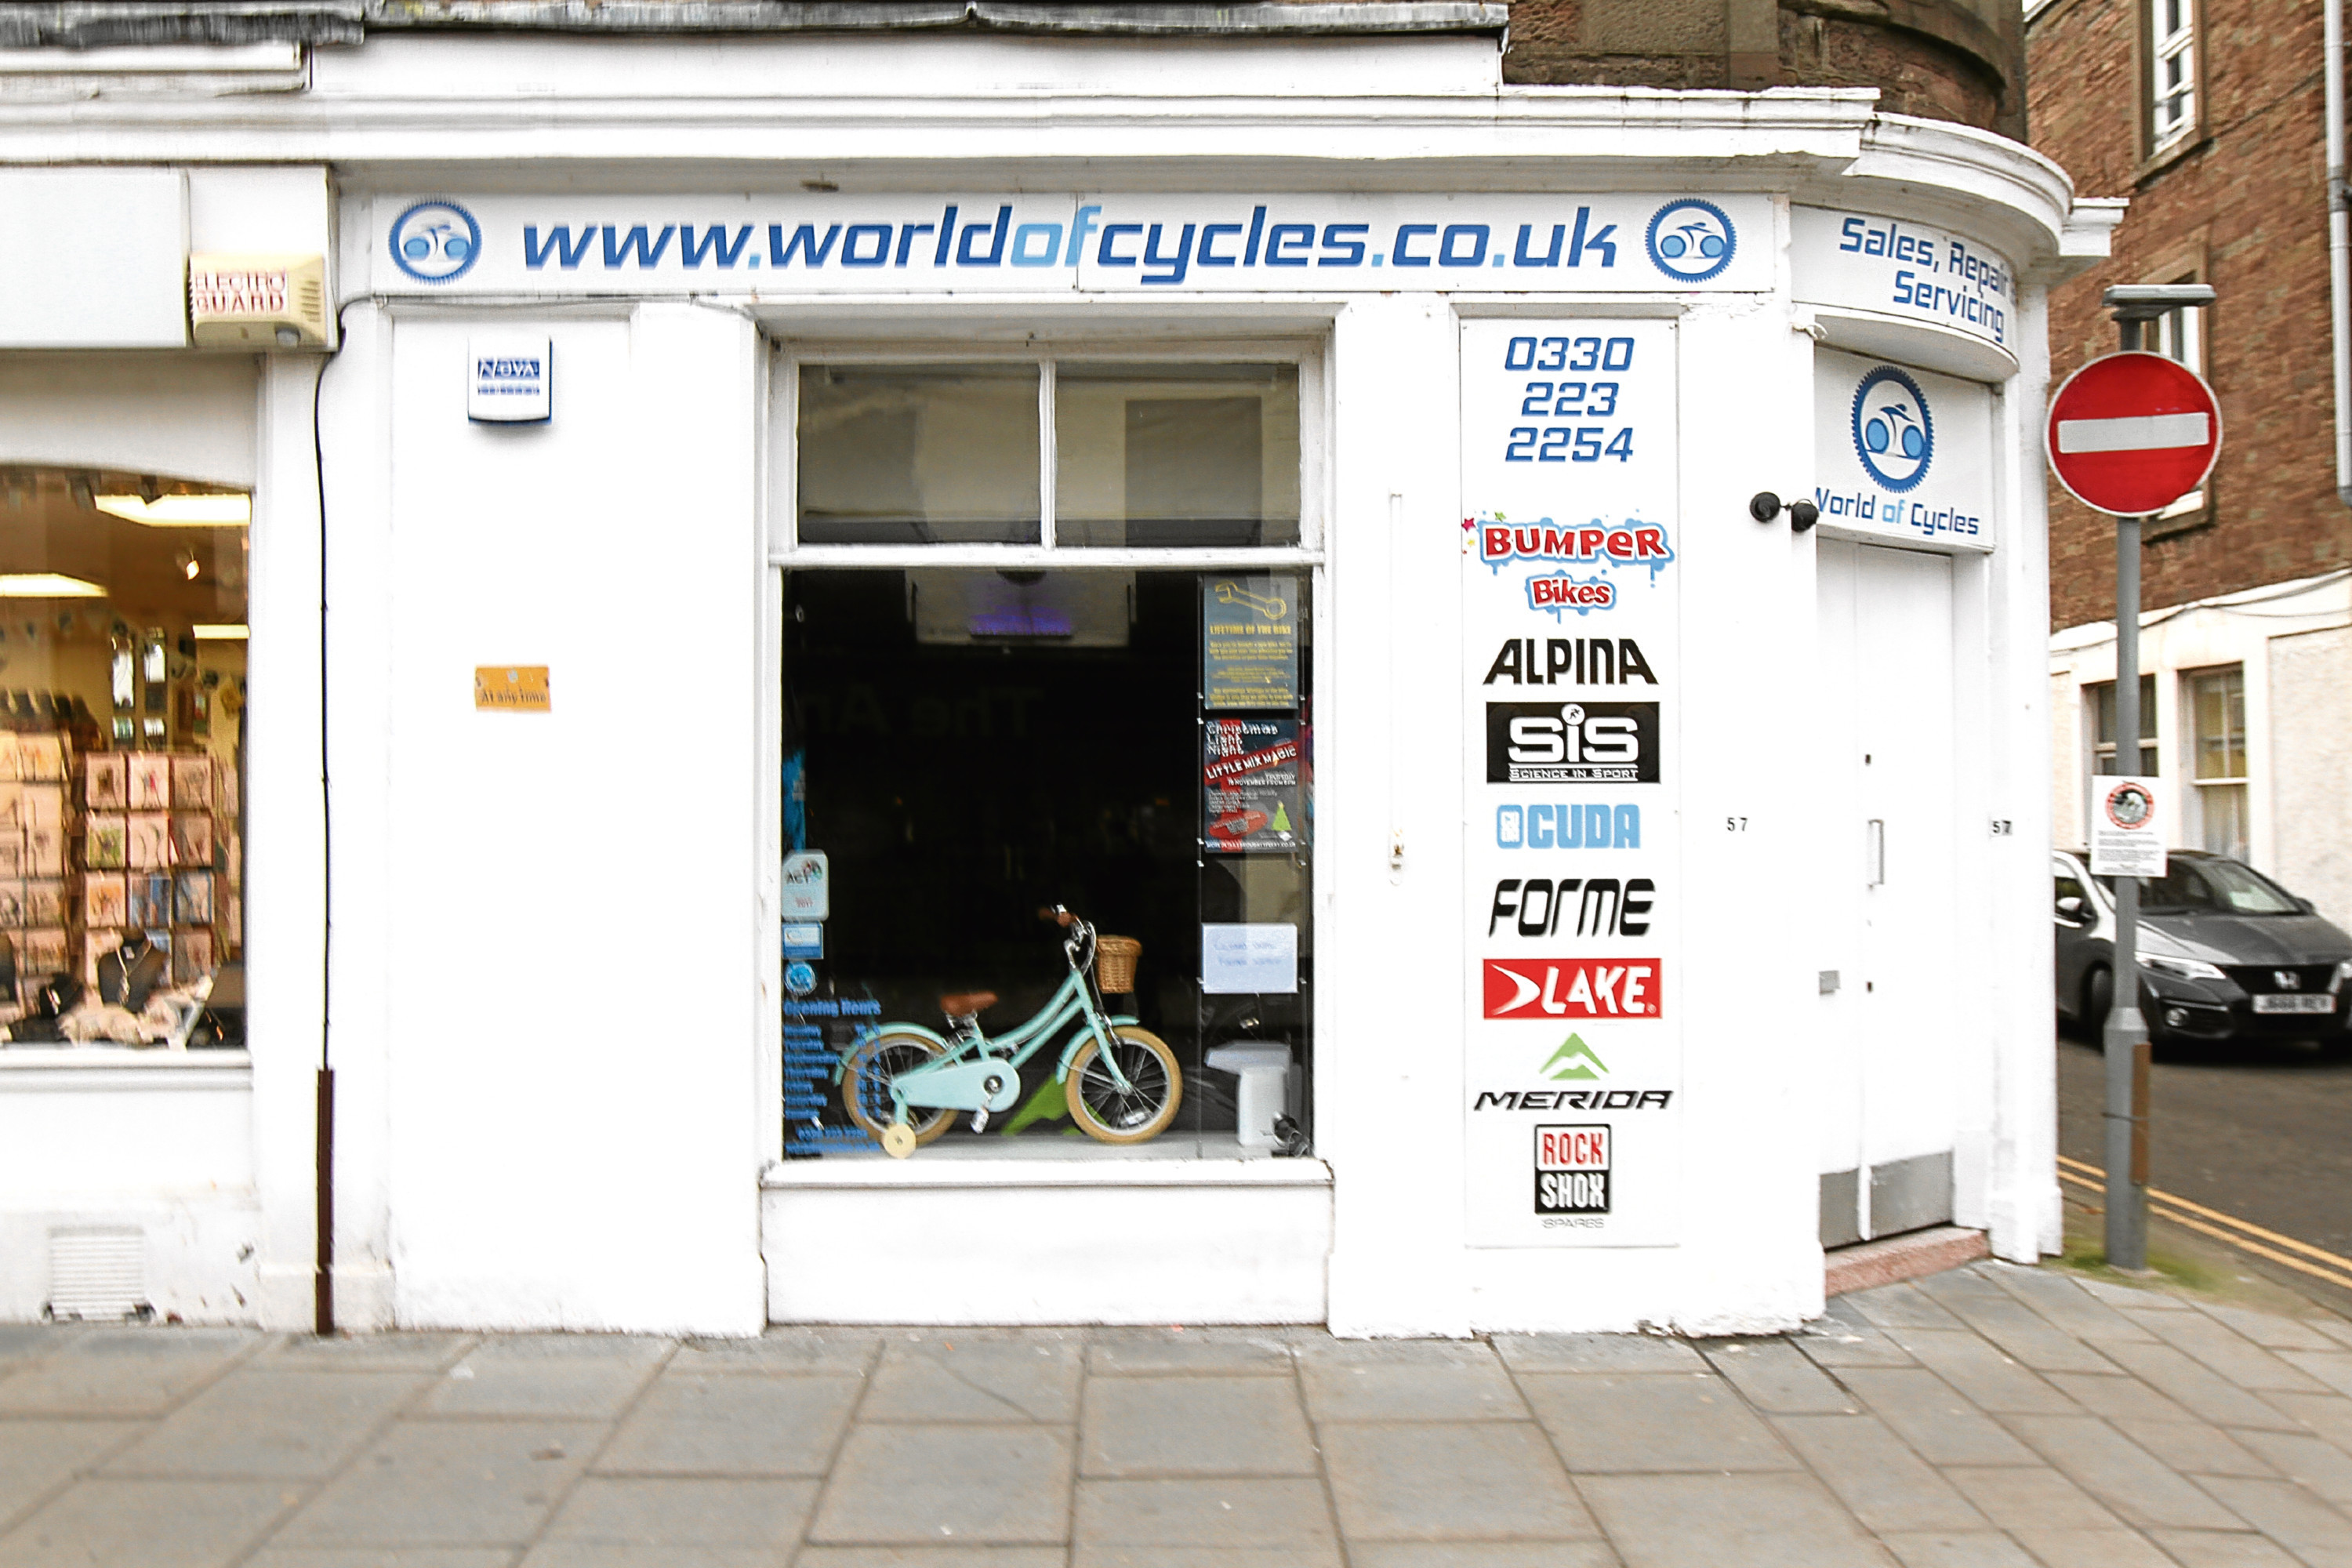 World of Cycles in Broughty Ferry